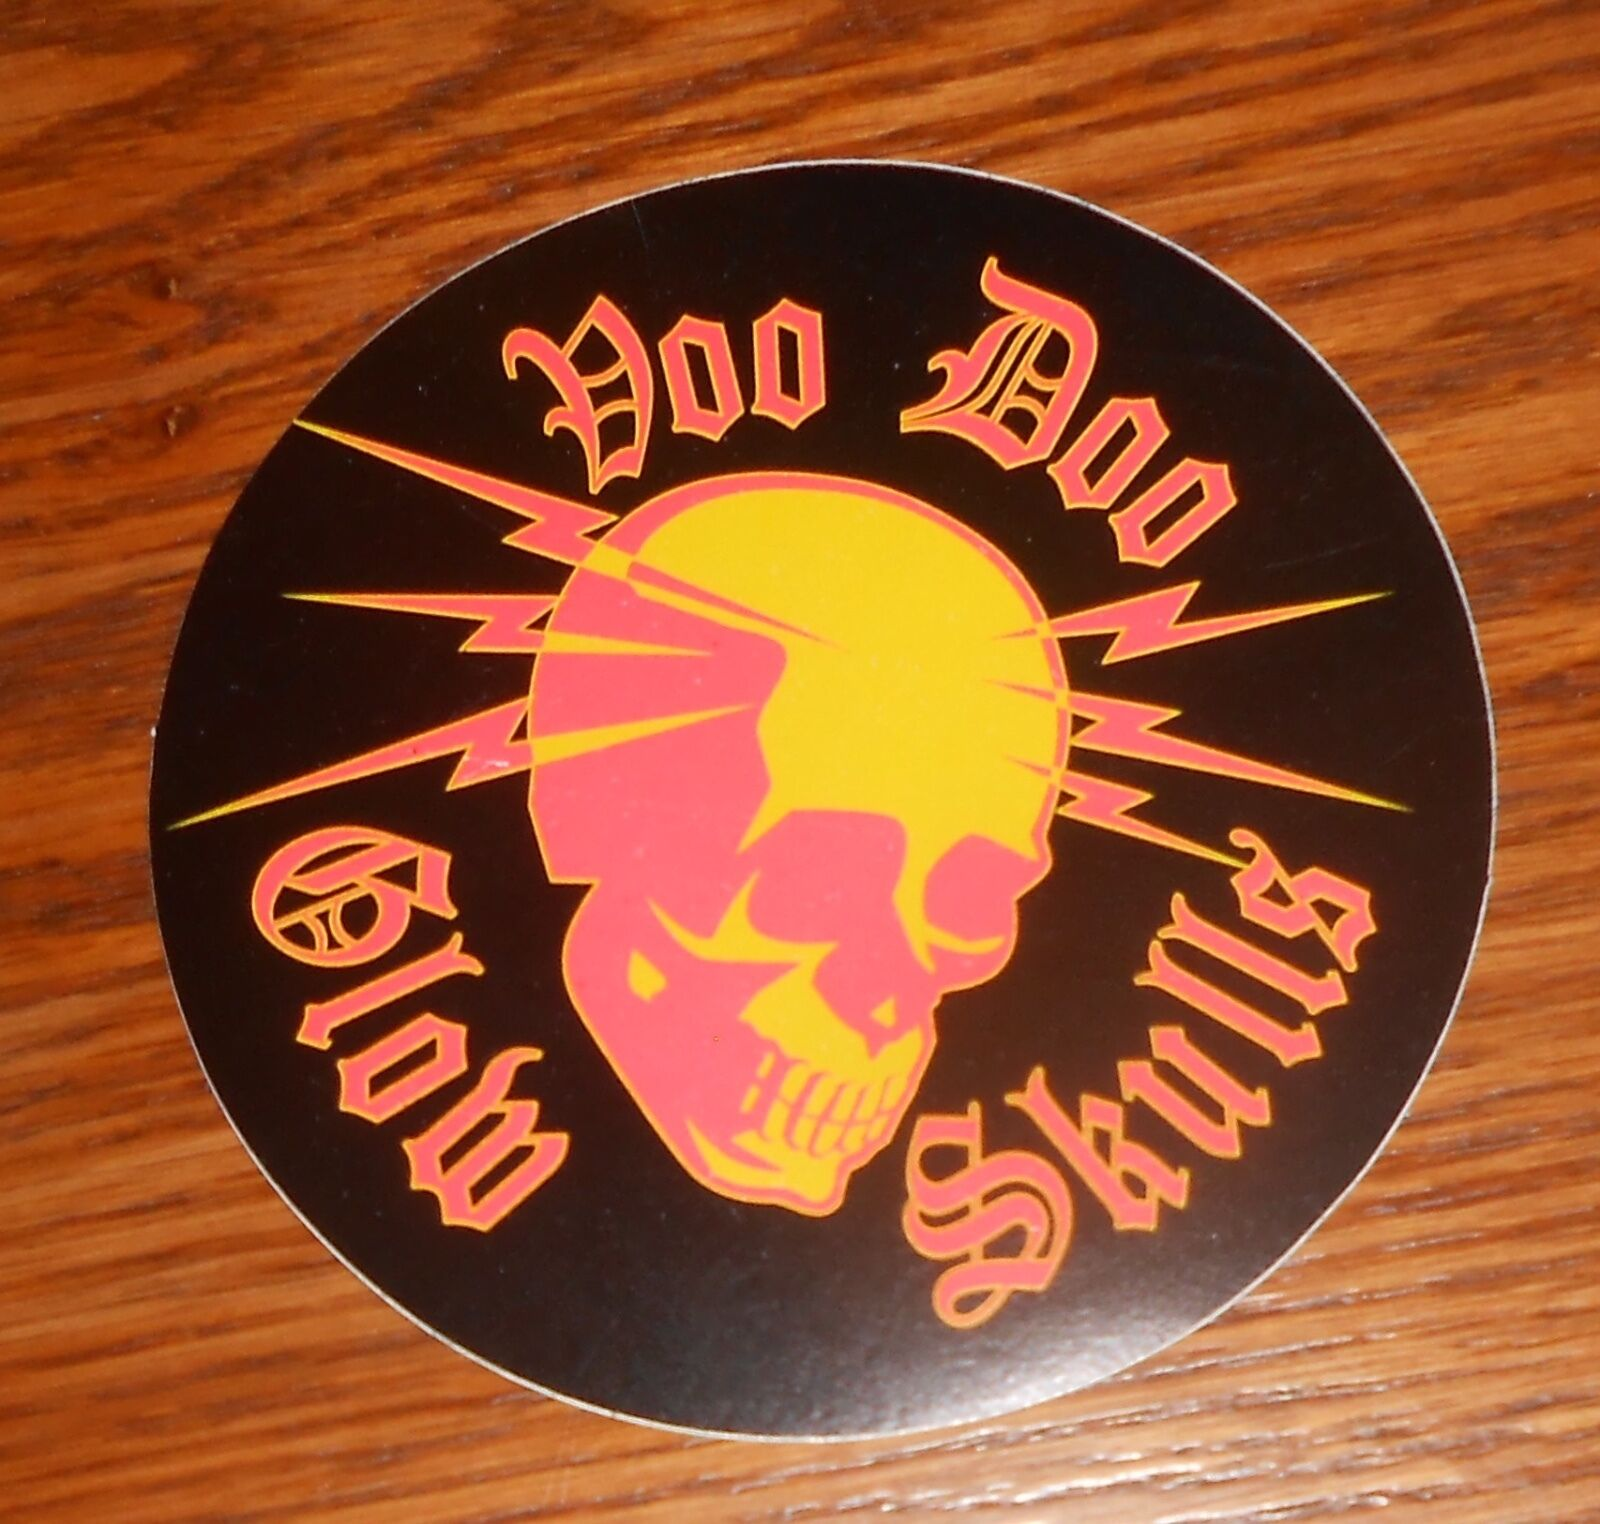 Voodoo Glow Skulls The Band Geek Mafia Sticker Decal Circle Promo 4  - $17.95